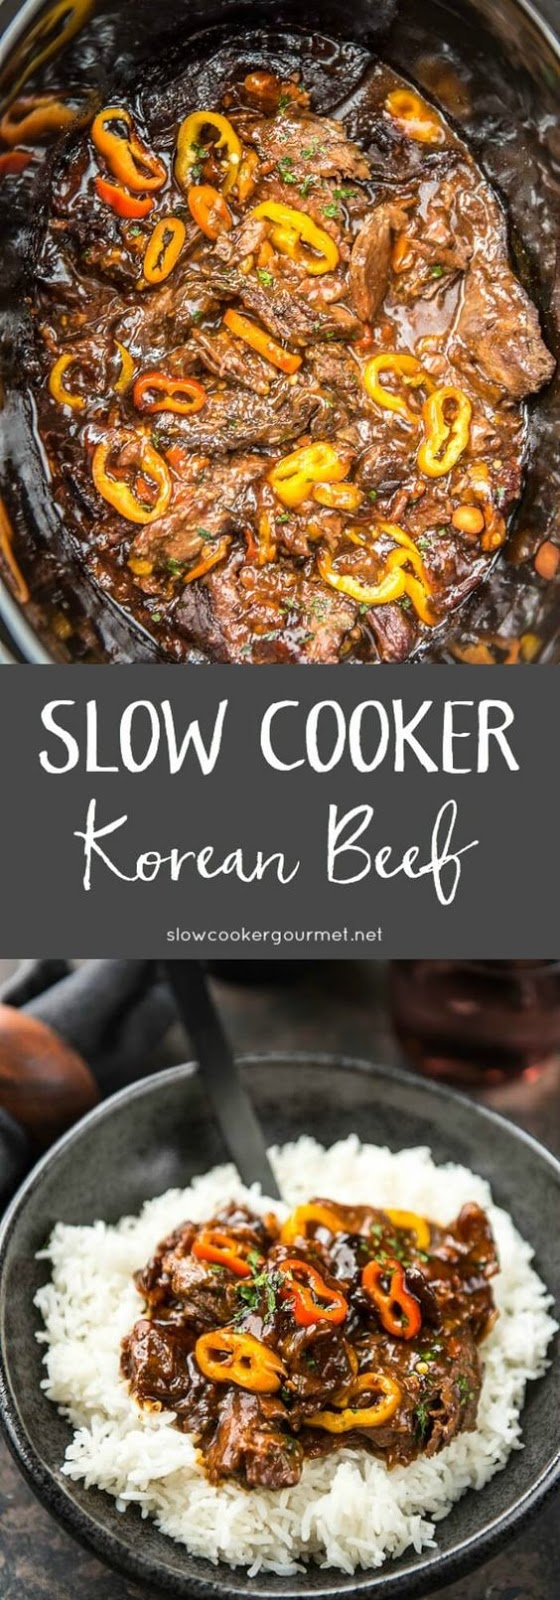 ★★★★☆ 7561 ratings | SLOW COOKER KOREAN BEEF WITH SWEET BABY PEPPERS #HEALTHYFOOD #EASYRECIPES #DINNER #LAUCH #DELICIOUS #EASY #HOLIDAYS #RECIPE #SLOW #COOKER #KOREAN #BEEF #SWEET #BABY #PEPPERS